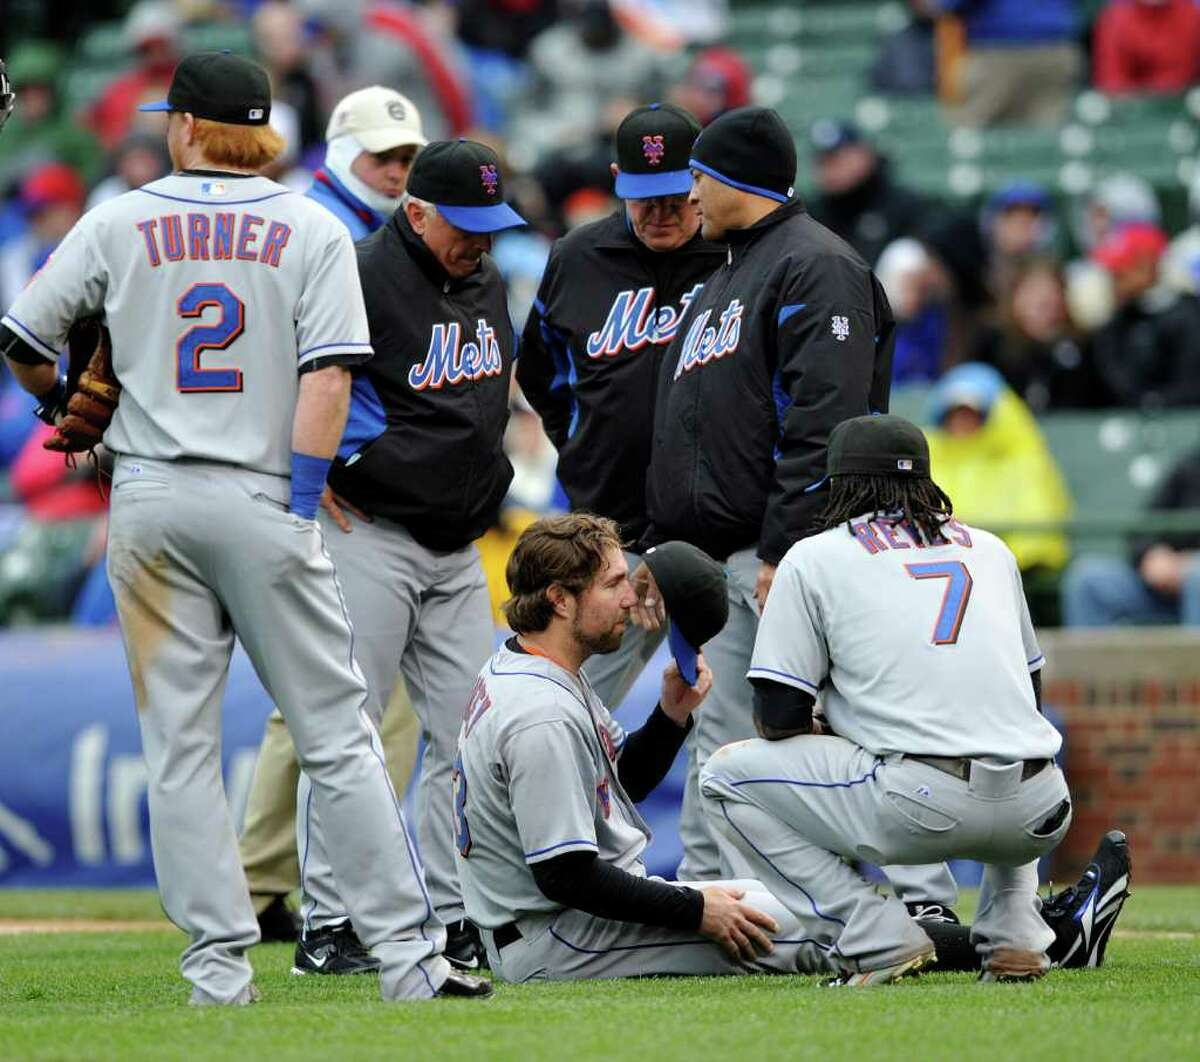 New York Mets starting pitcher R.A. Dickey, center, sits on the ground after getting injured against the Chicago Cubs during the third inning of a baseball game Thursday, May 26, 2011, in Chicago. (AP Photo/Jim Prisching)